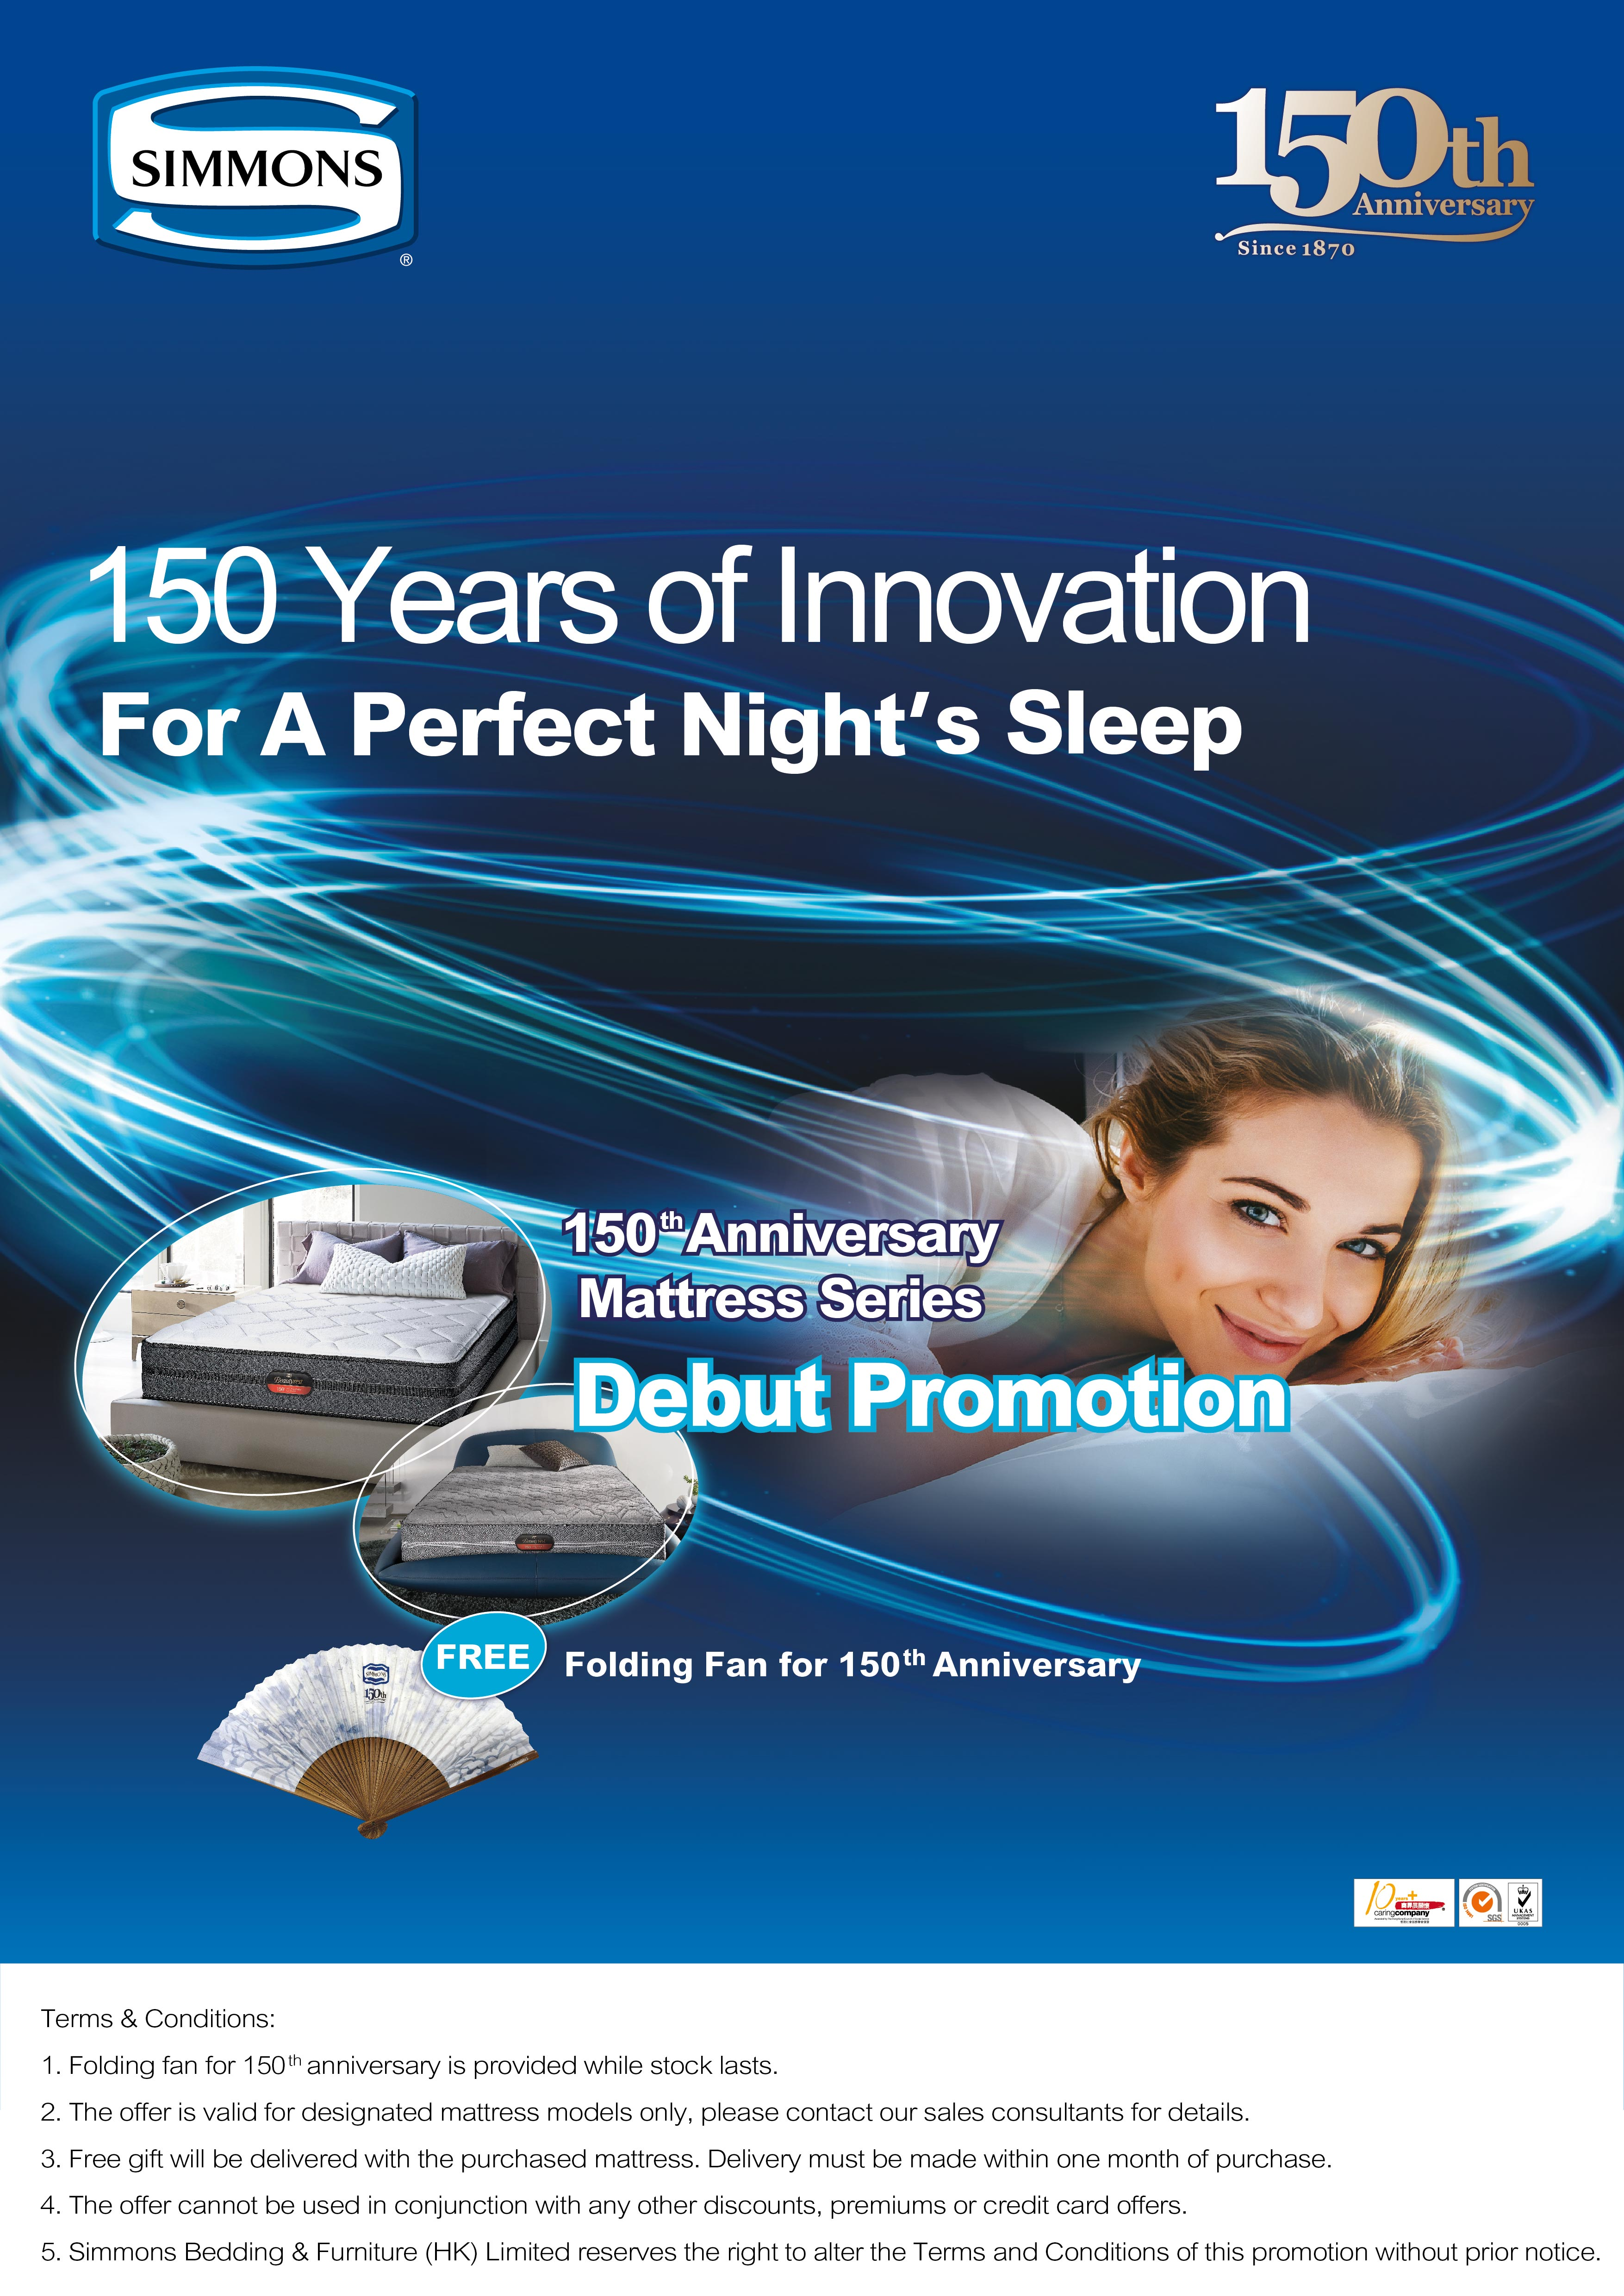 150 years of innovation for a perfect night's sleep